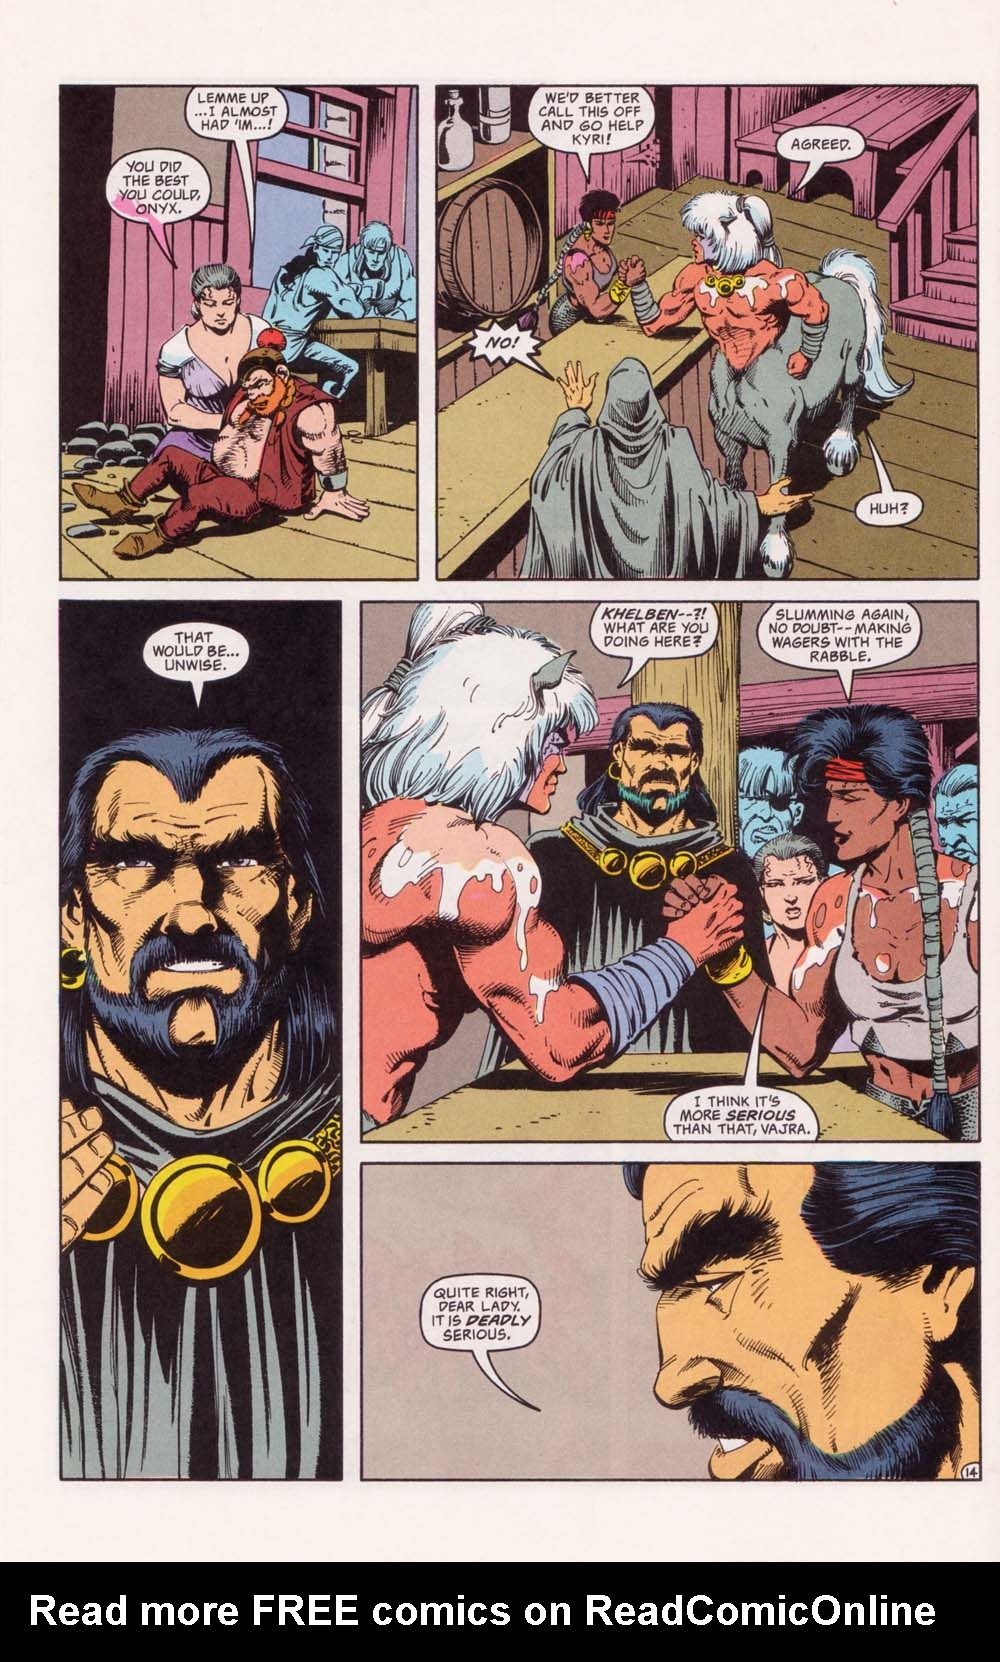 Read online Advanced Dungeons & Dragons comic -  Issue #33 - 14